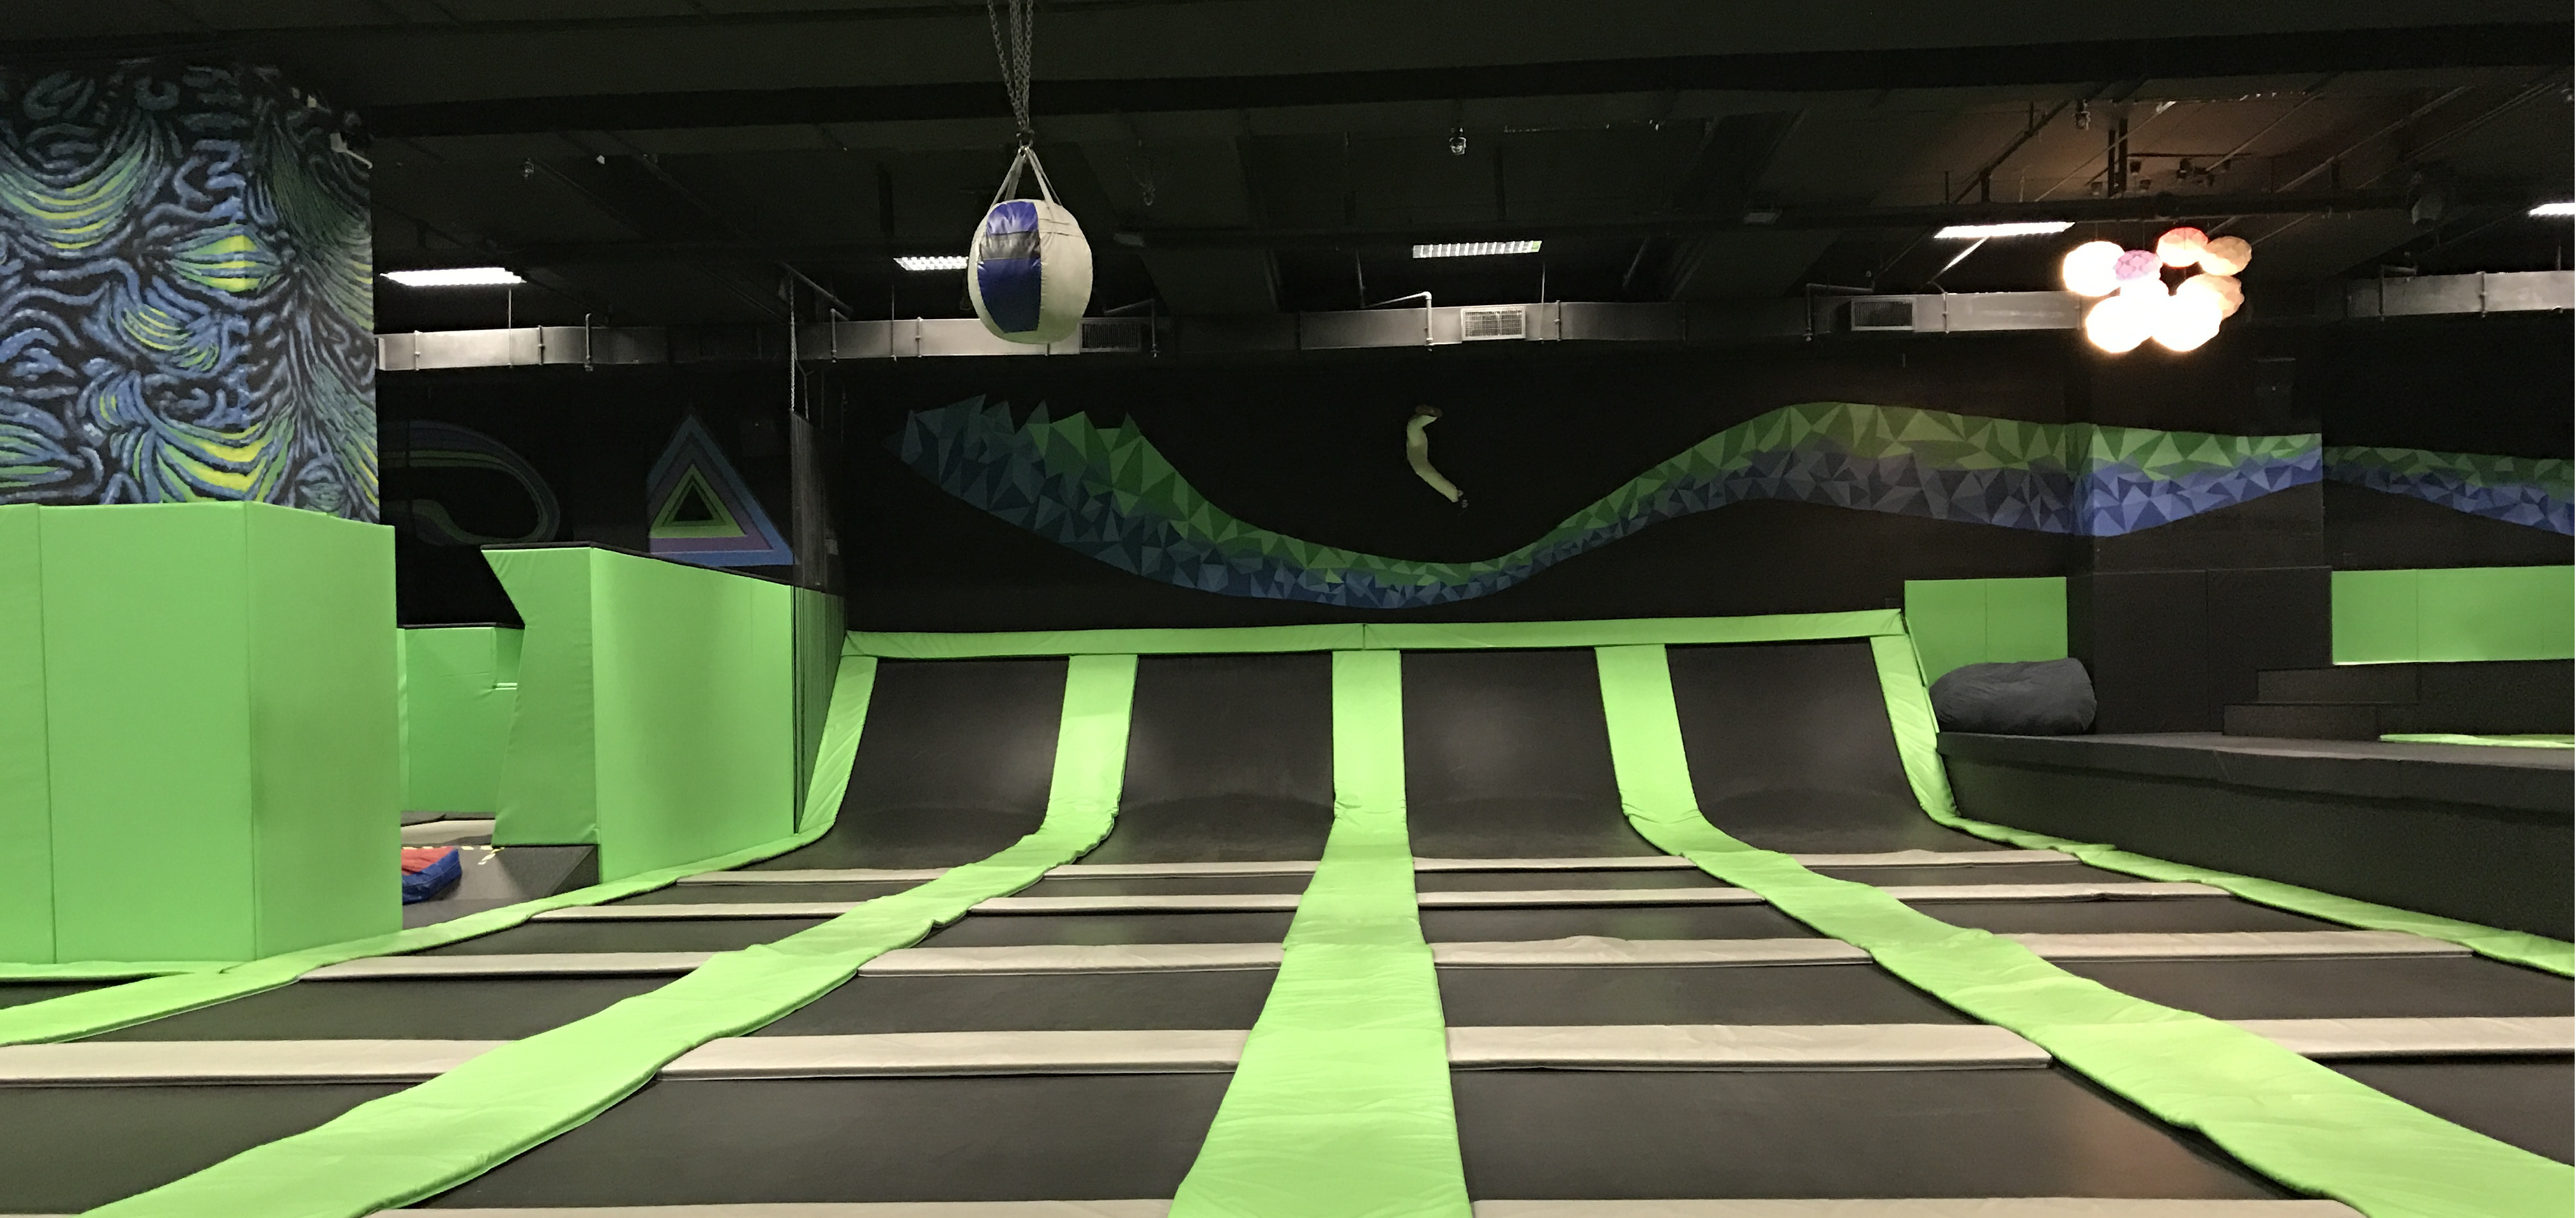 Reasons For Kids To Go To Trampoline Park